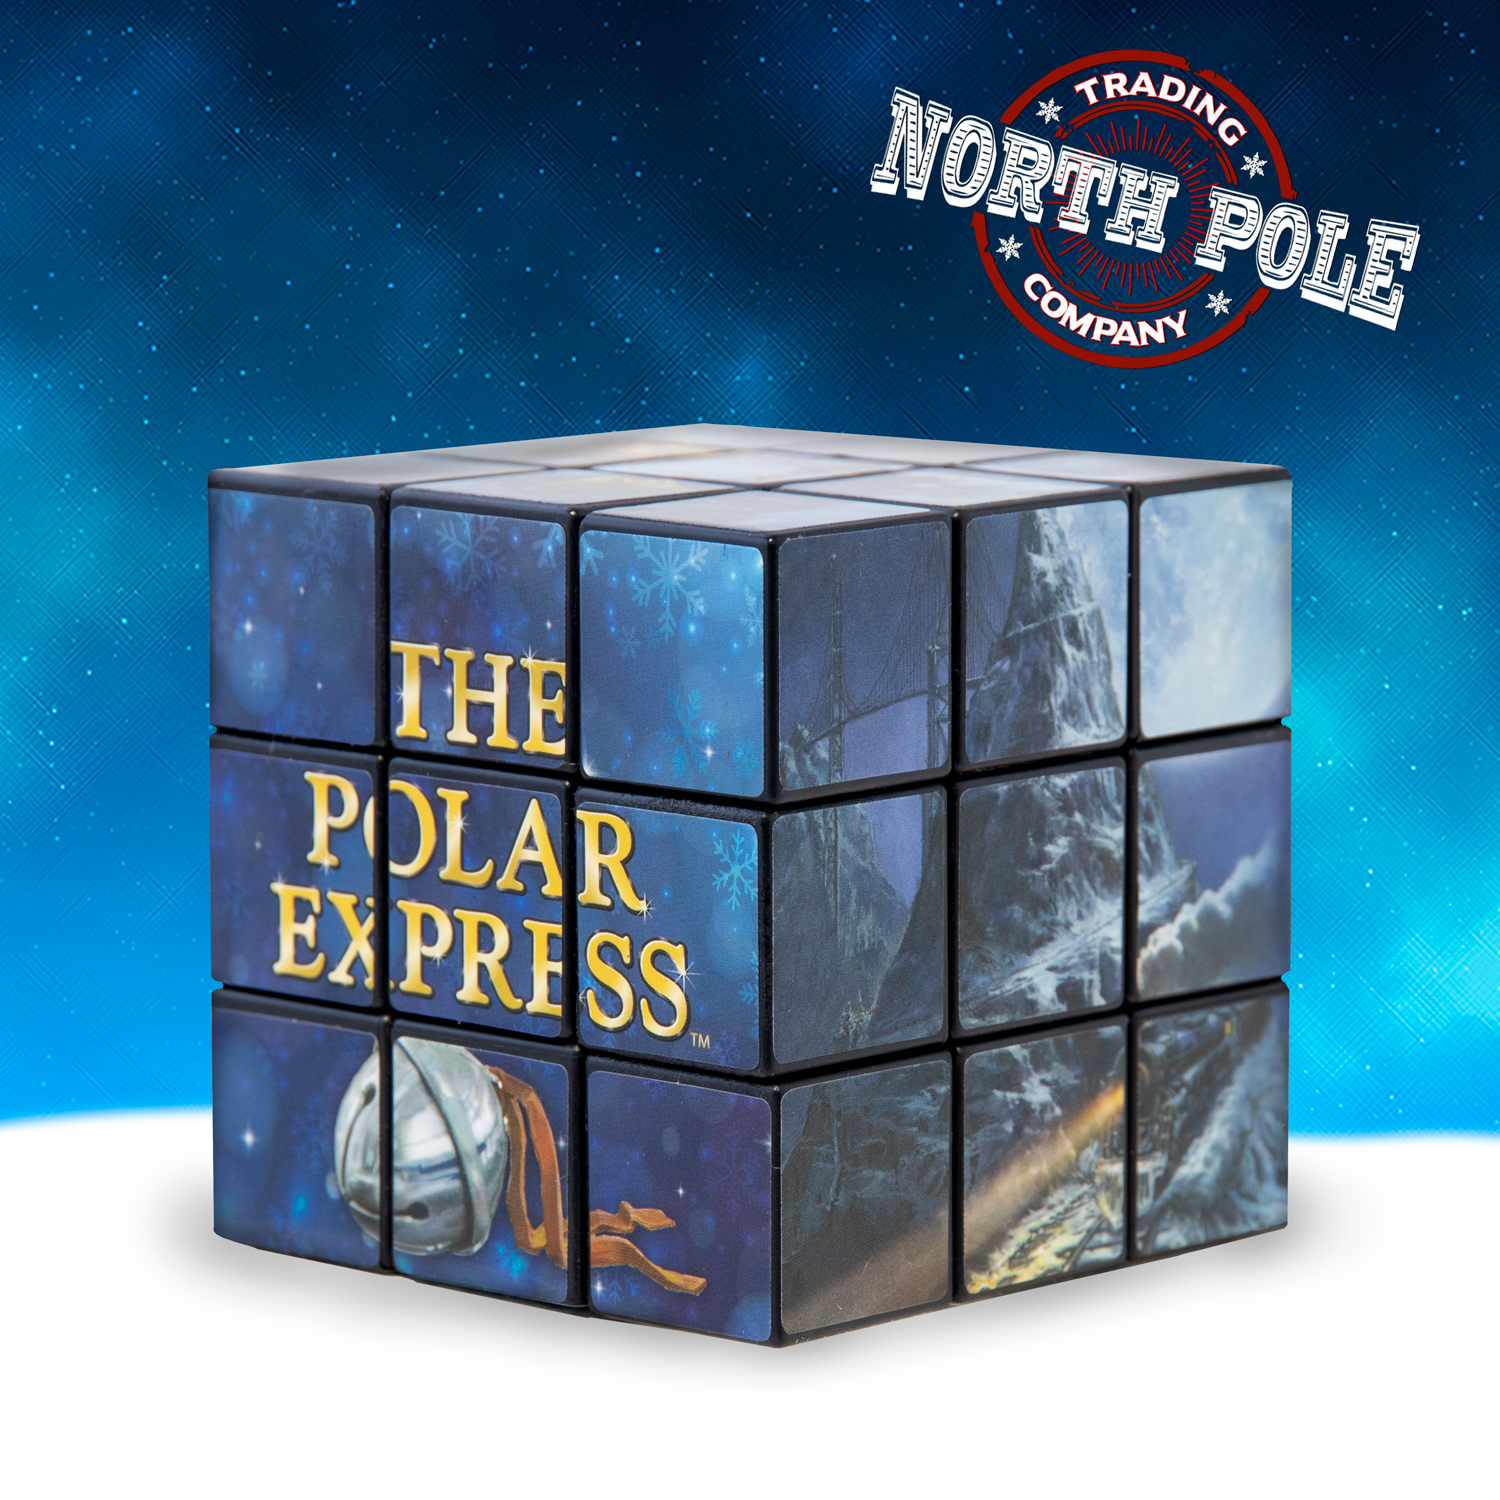 THE POLAR EXPRESS™ Picture Puzzle Cube